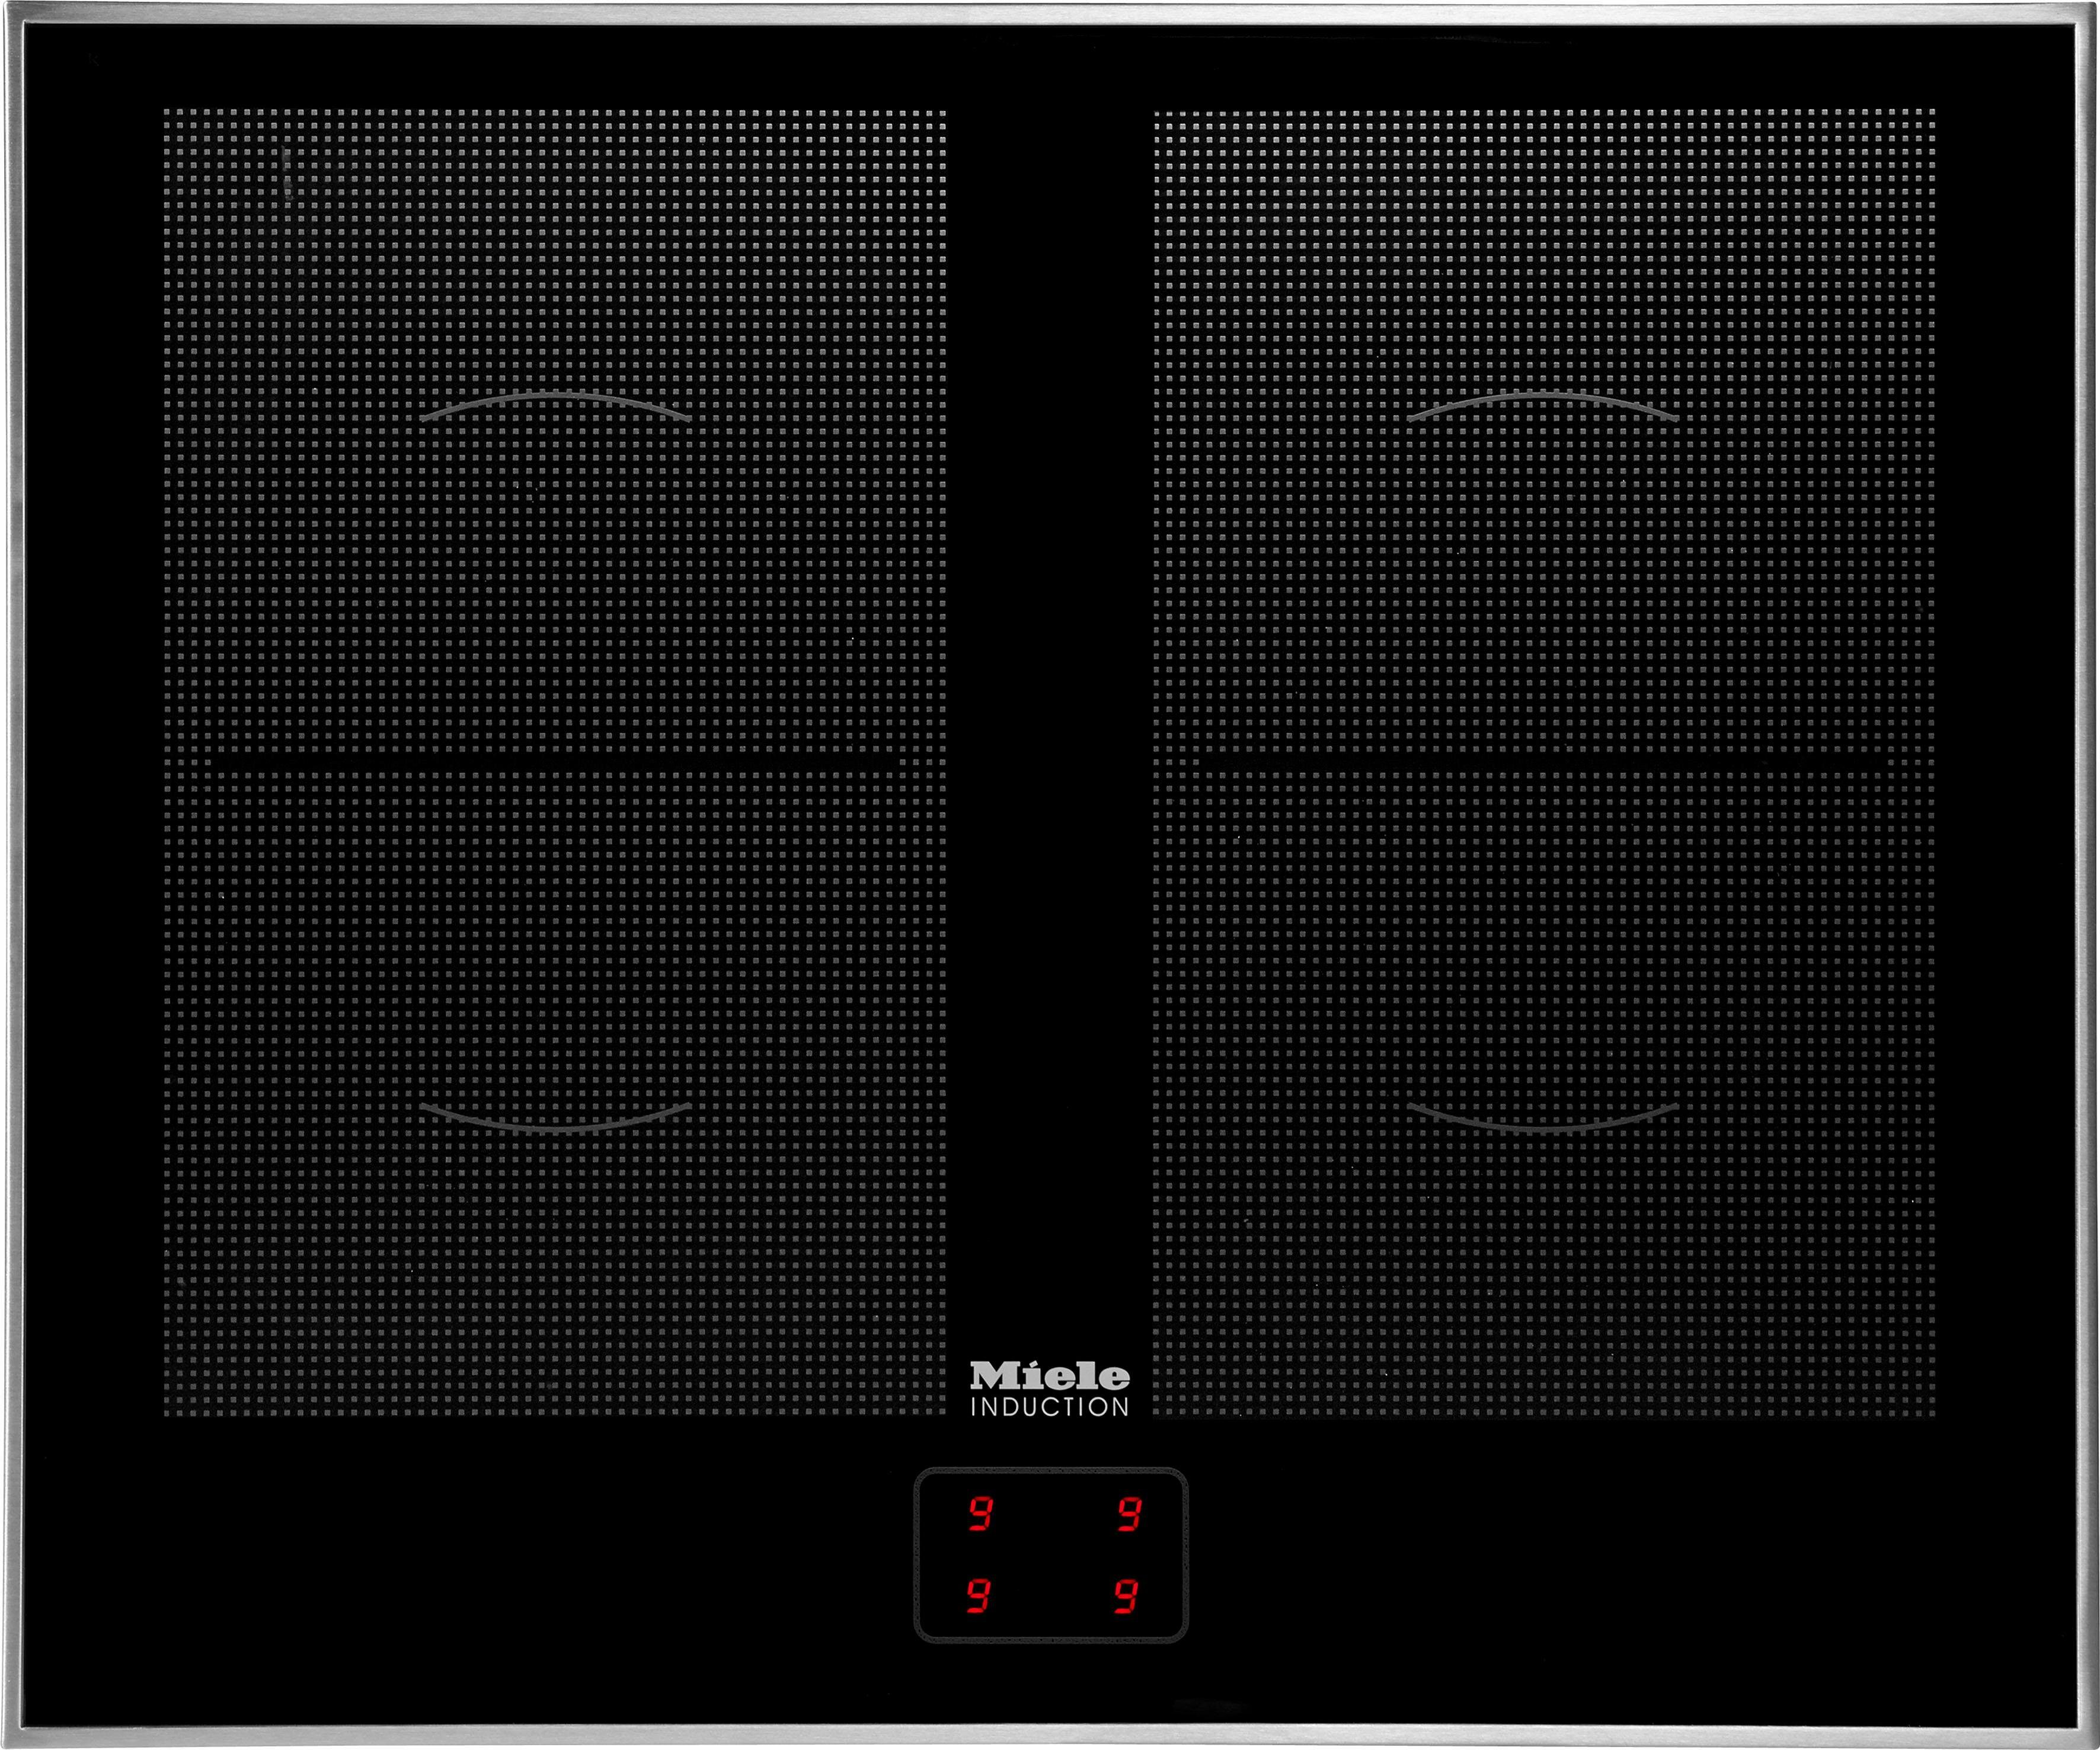 Induktion Miele Bosch Benchmark Vs Miele Slide In Induction Ranges